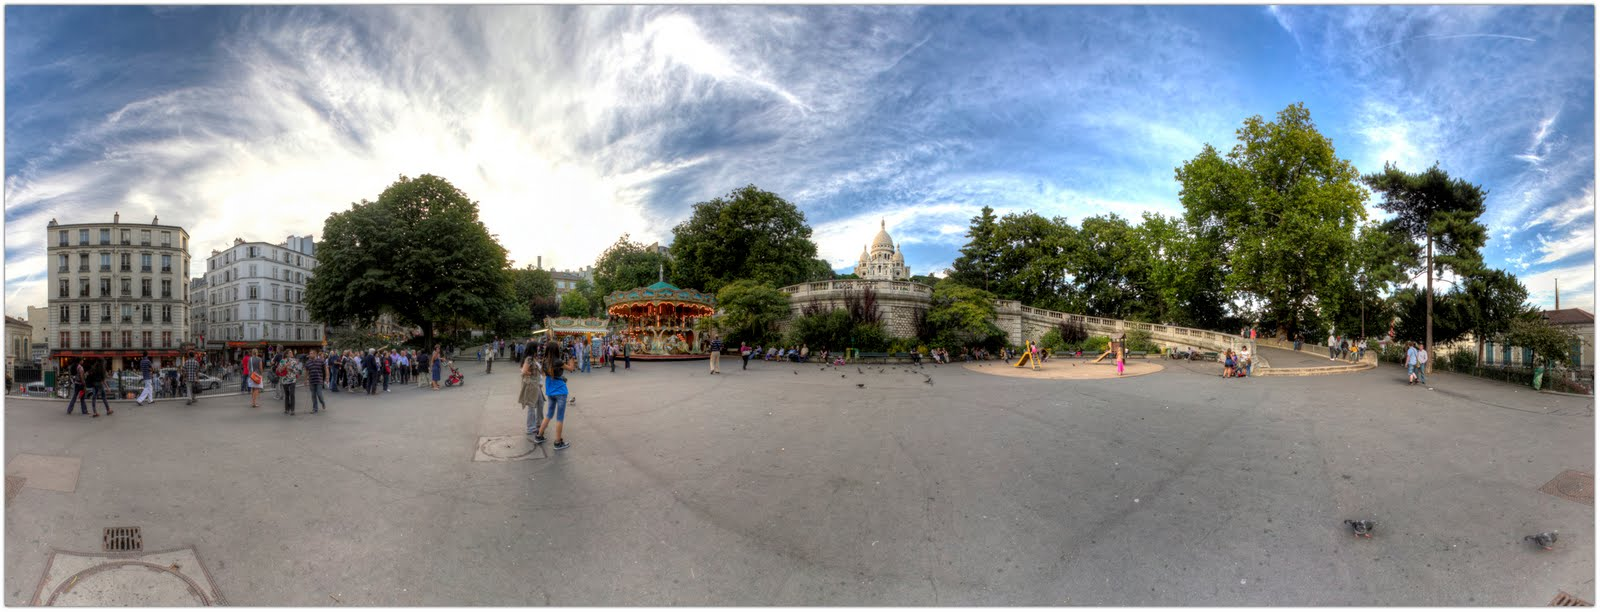 Place Saint Pierre, Montmartre (Paris 18).Panorama 360 Hdr